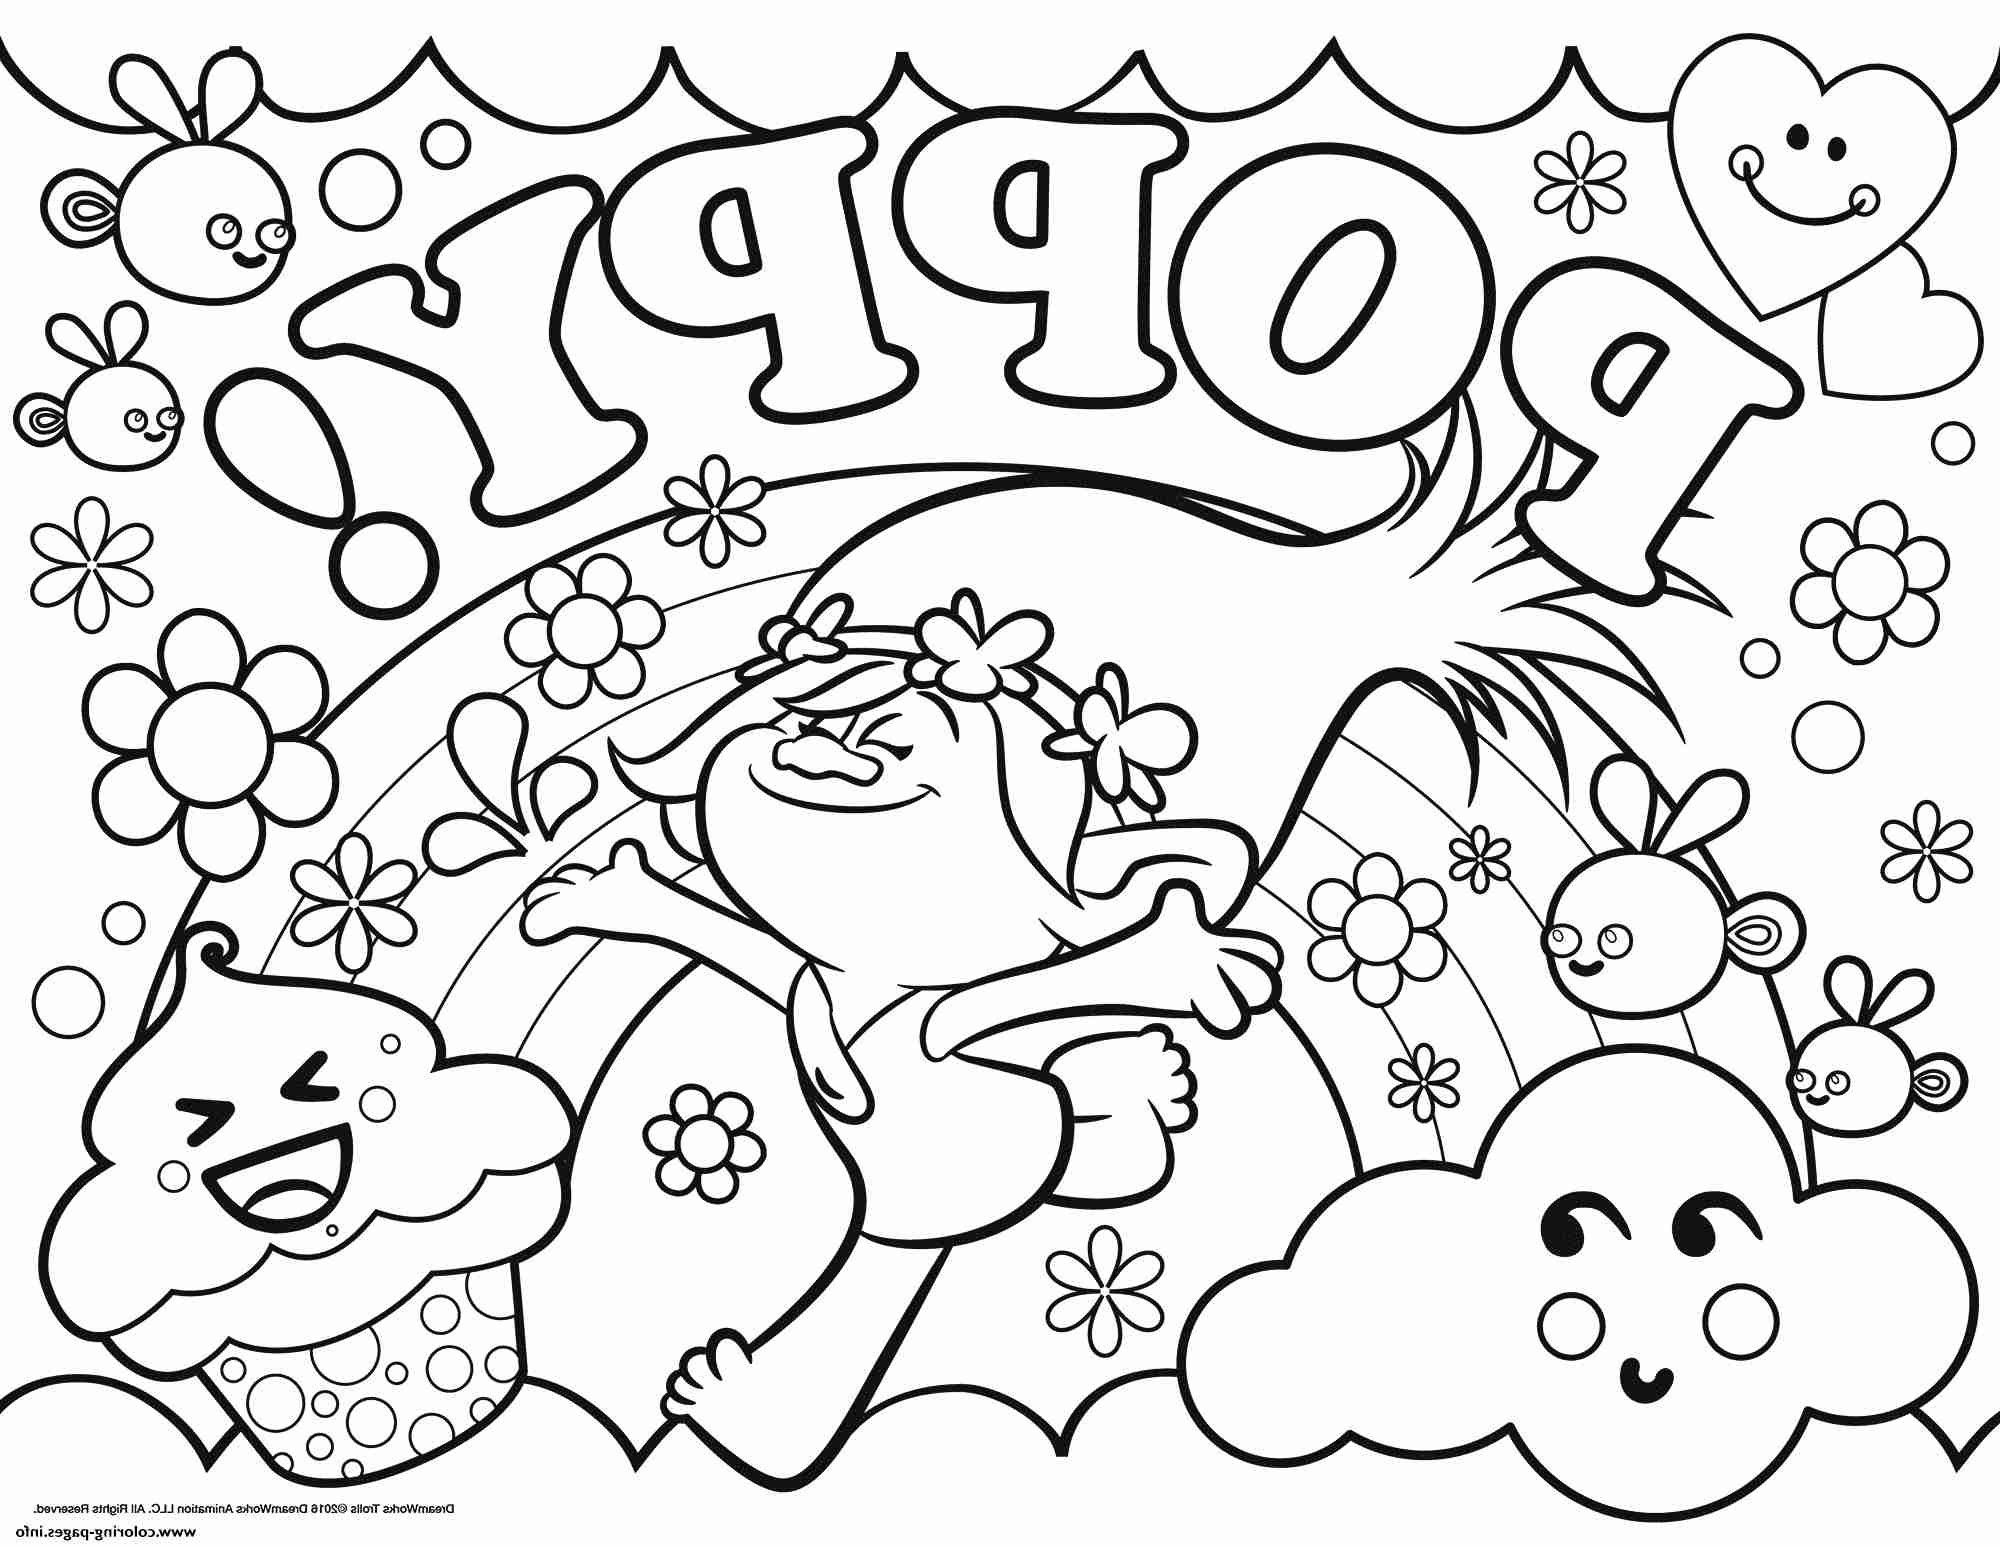 Christmas Coloring Pages Trolls With Pinterest Free Best Poppy